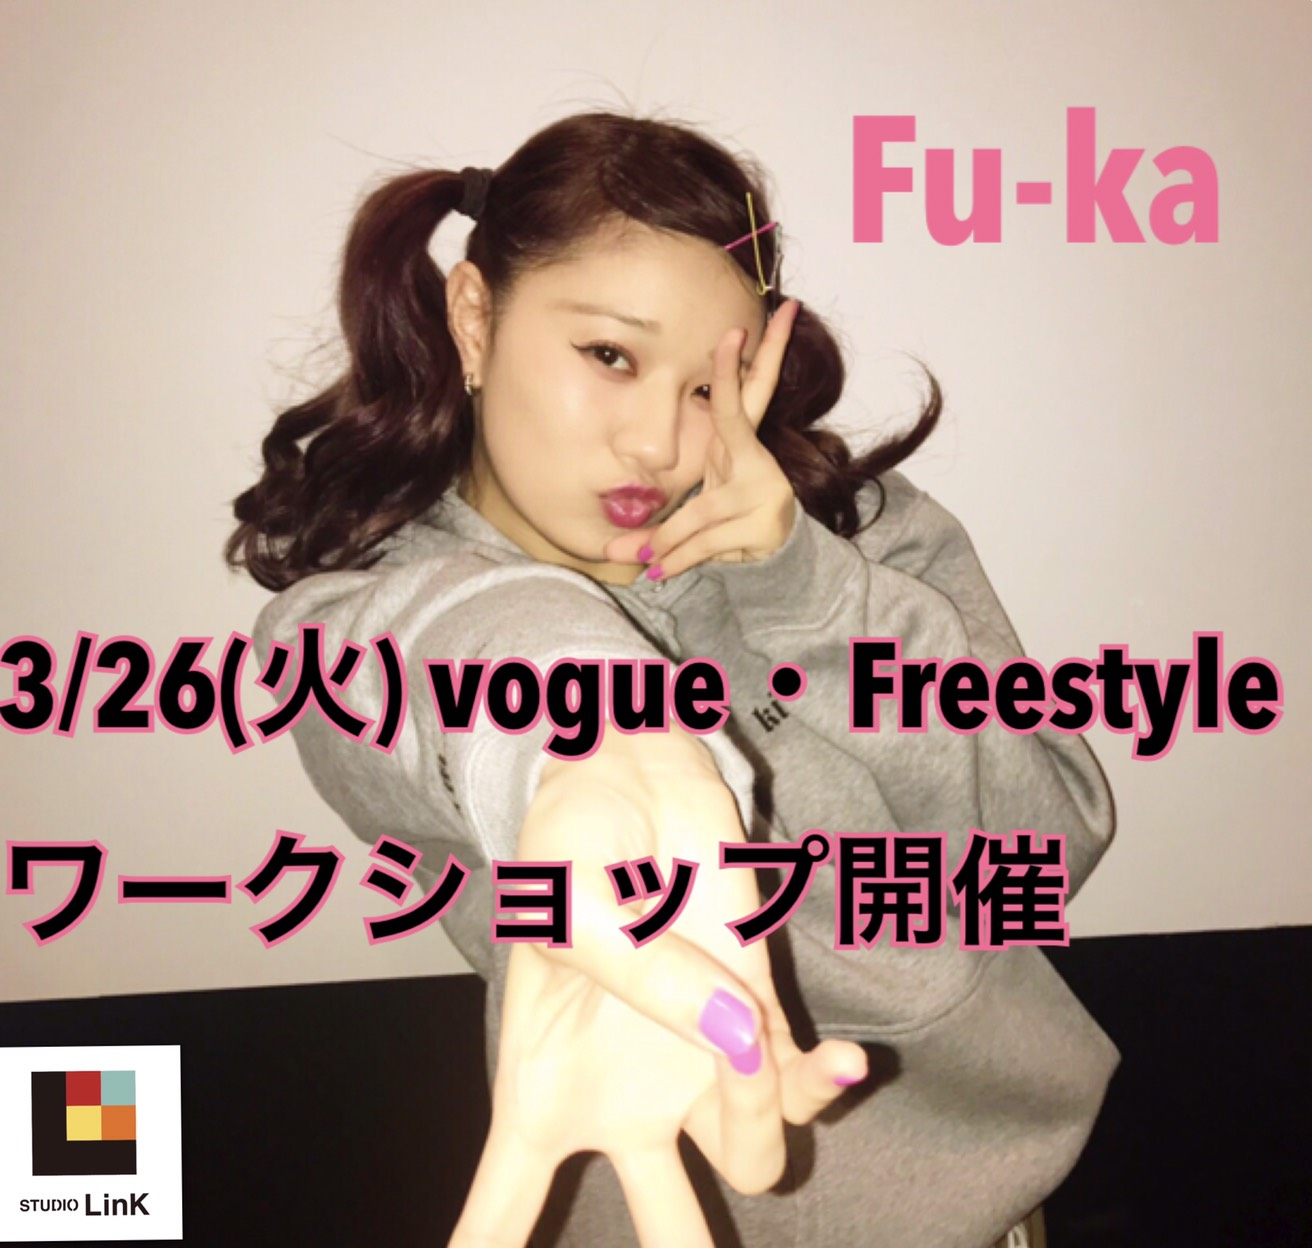 studiolink|Vogue ・Freestyle ワークショップ開催